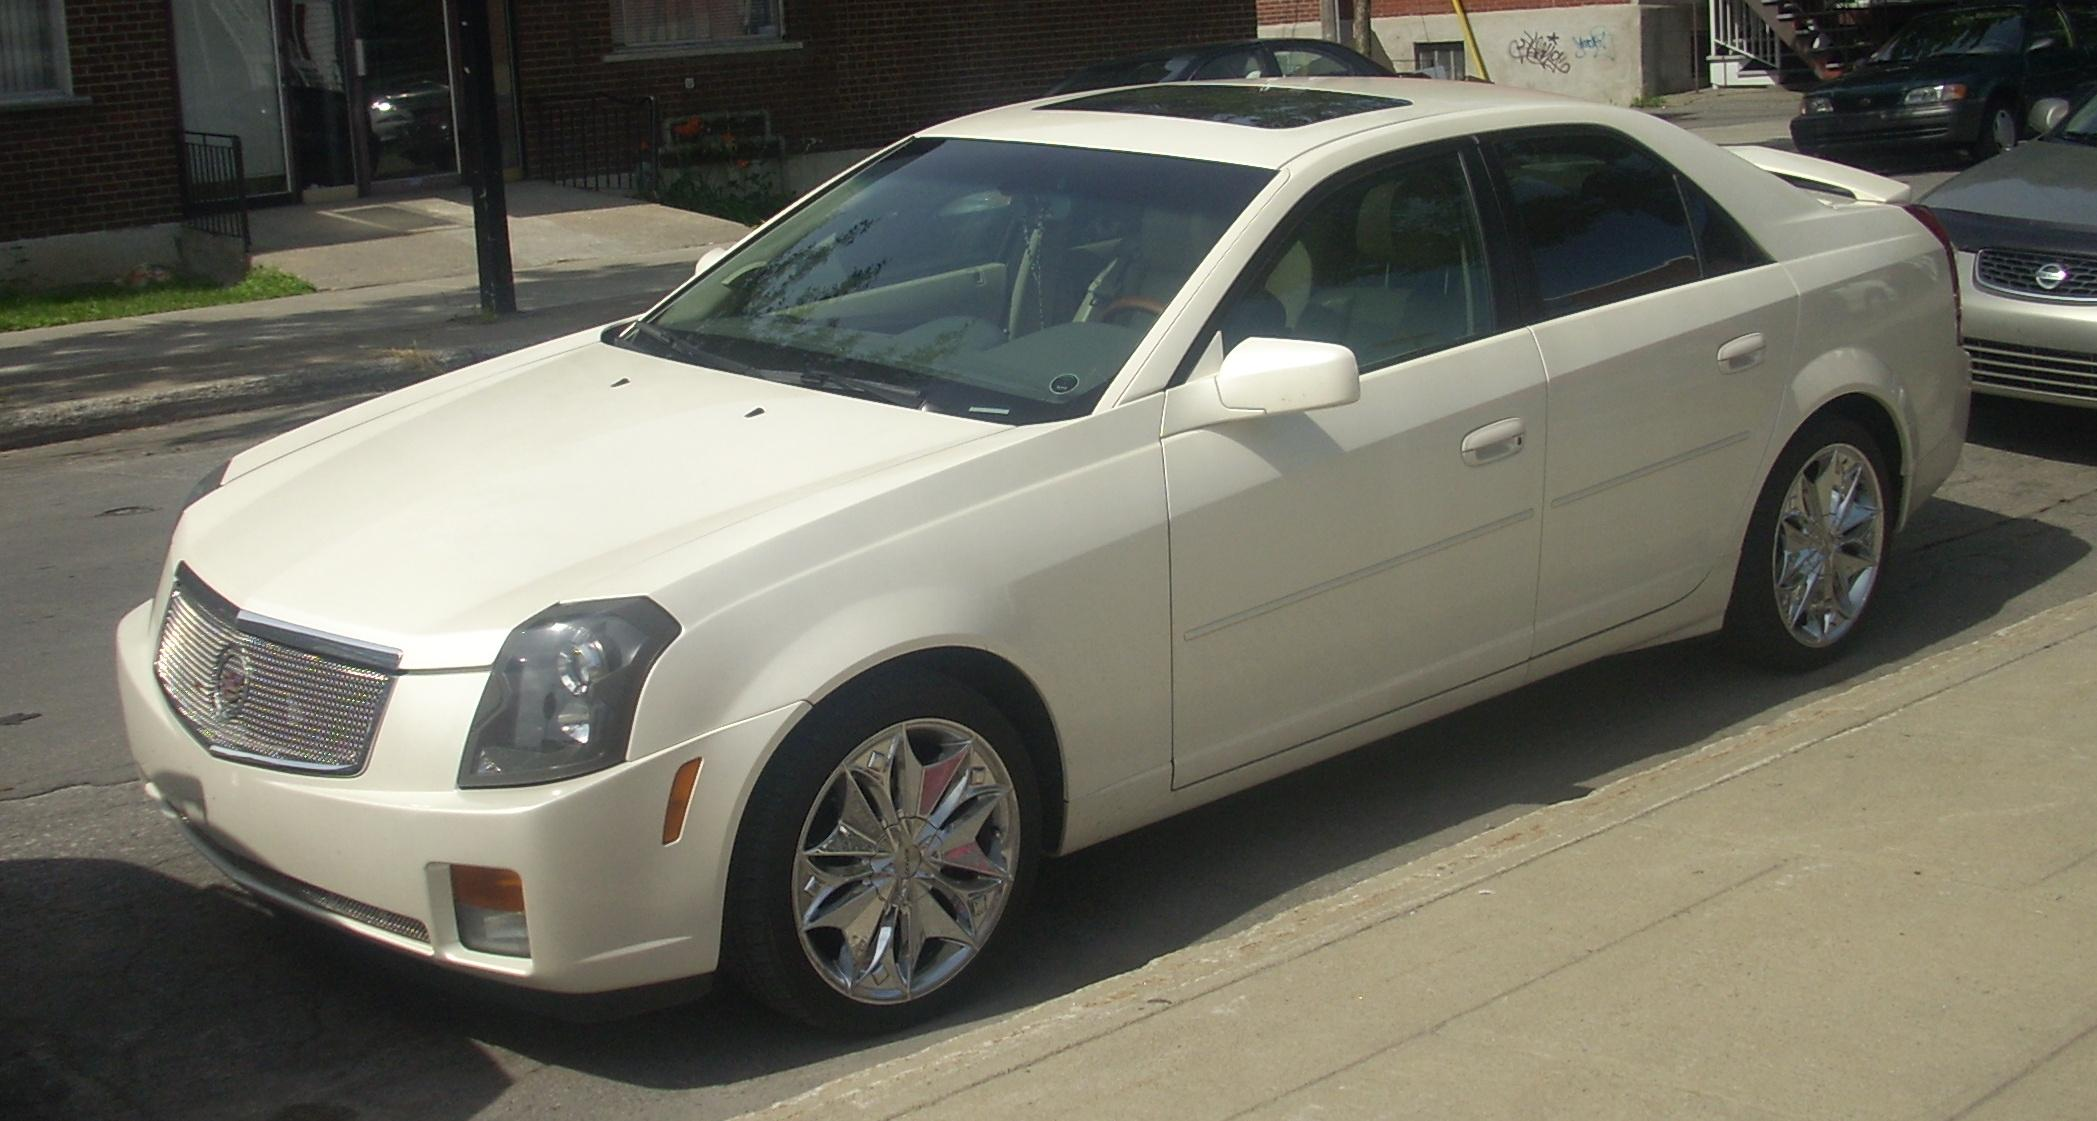 File:Tuned '03-'05 Cadillac CTS.JPG - Wikimedia Commons